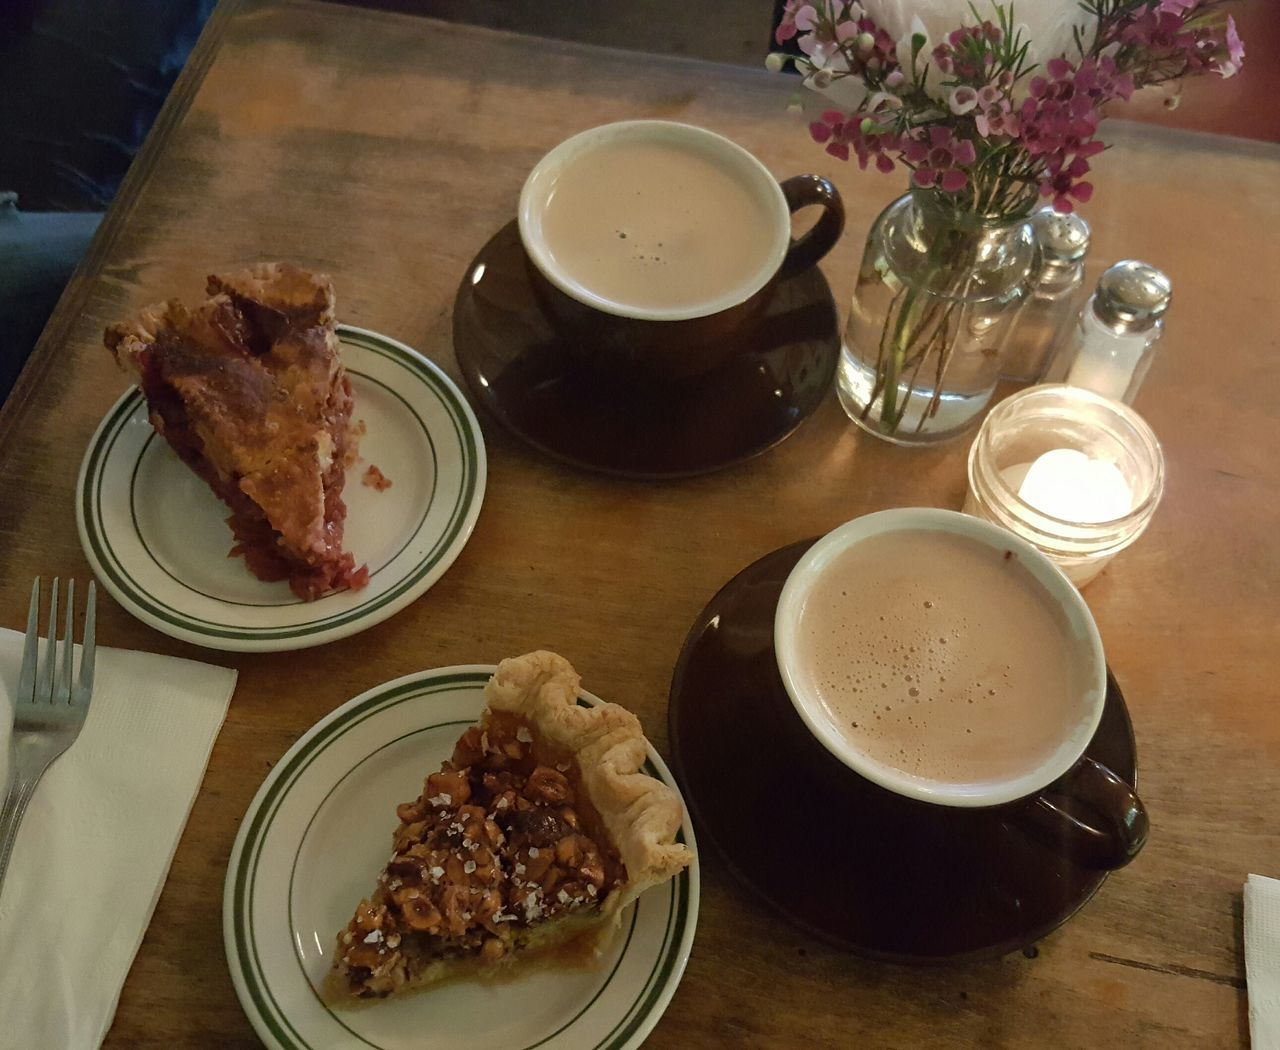 Went out for Pie and Chai last night after dinner. Tart cherry and honey hazelnut pies, yummmm! Food And Drink Dessert High Angle View Tea - Hot Drink Sweet Pie Comfort Food Visual Feast